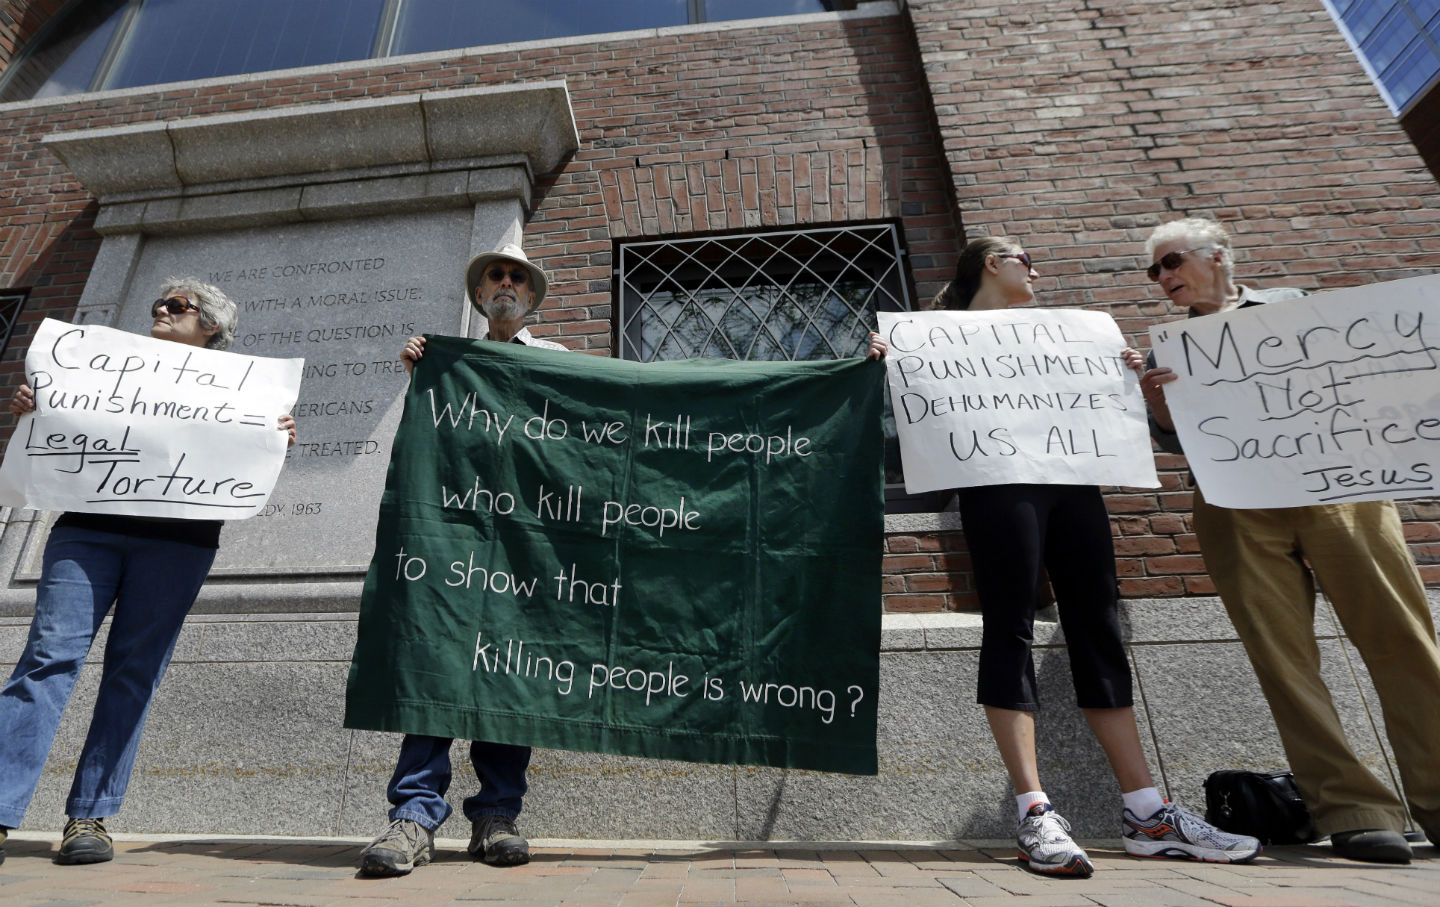 Demonstrators protest the death penalty for Dzhokhar Tsarnaev.